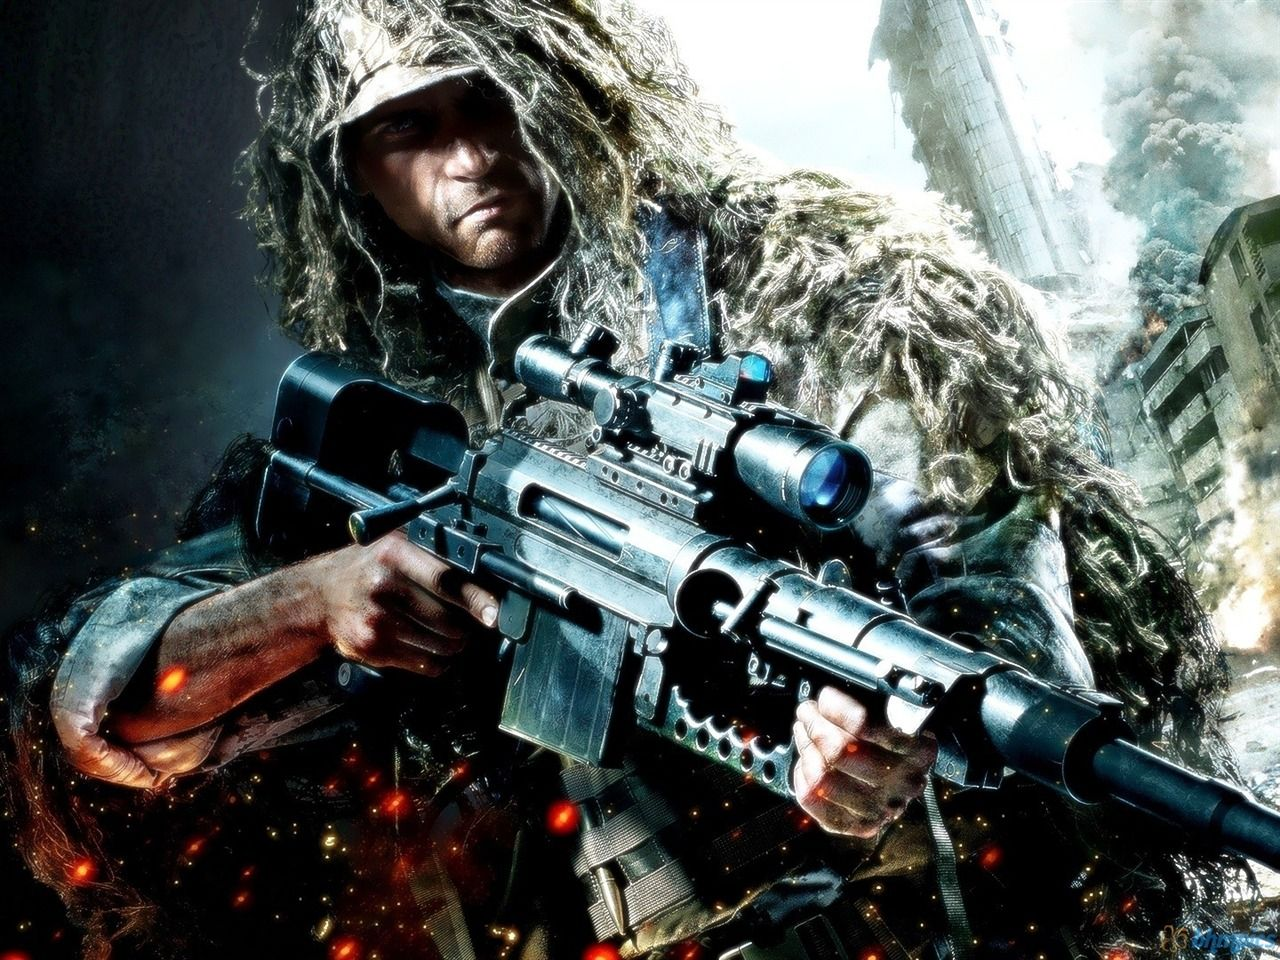 Sniper Rifle HD Wallpapers Backgrounds Wallpaper